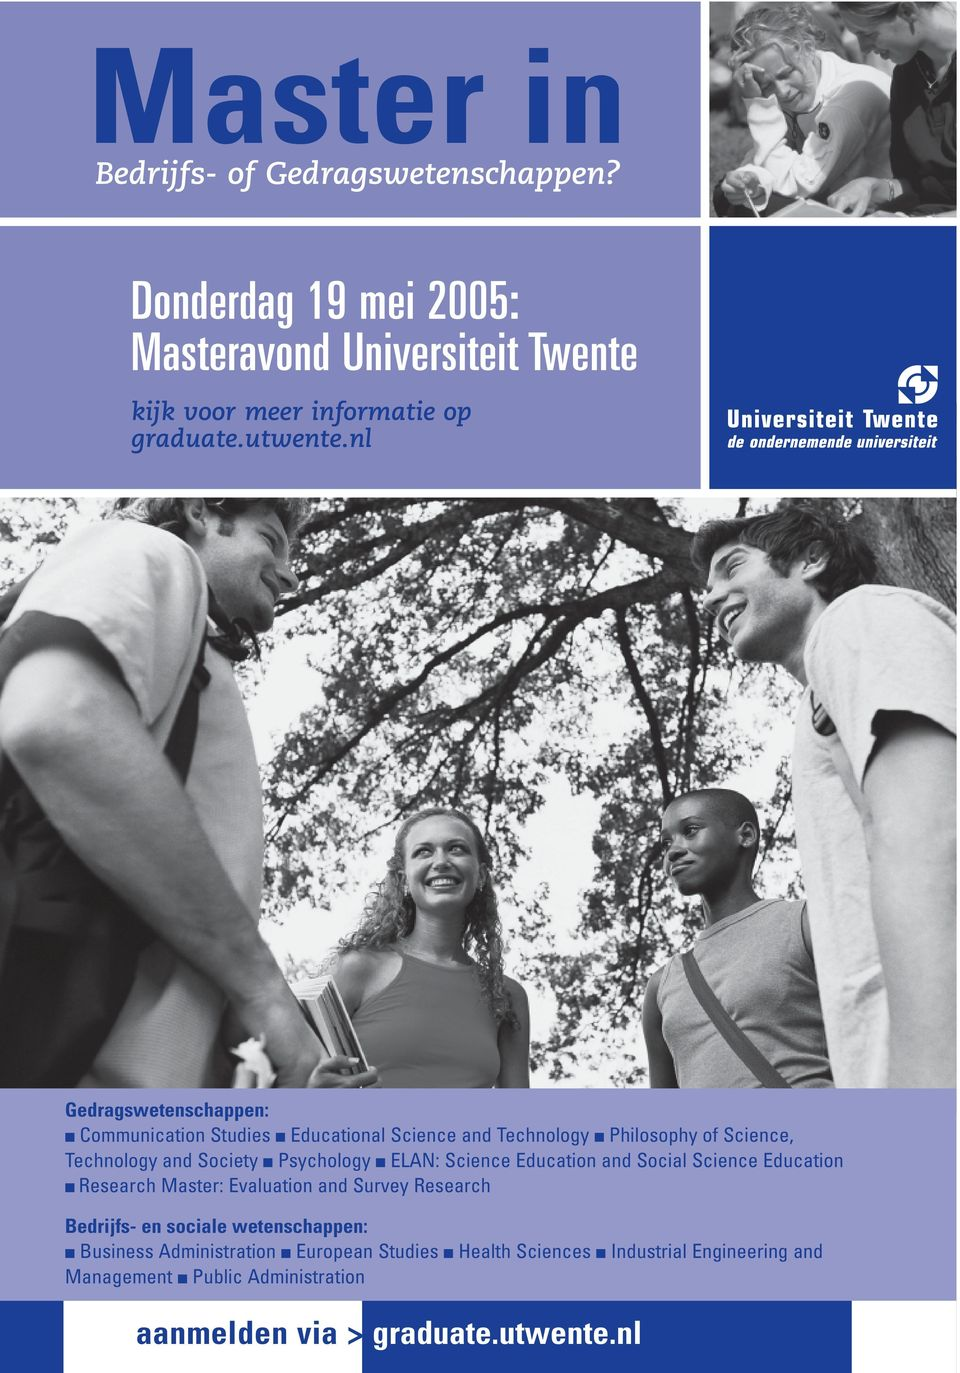 nl Gedragswetenschappen: Communication Studies Educational Science and Technology Philosophy of Science, Technology and Society Psychology